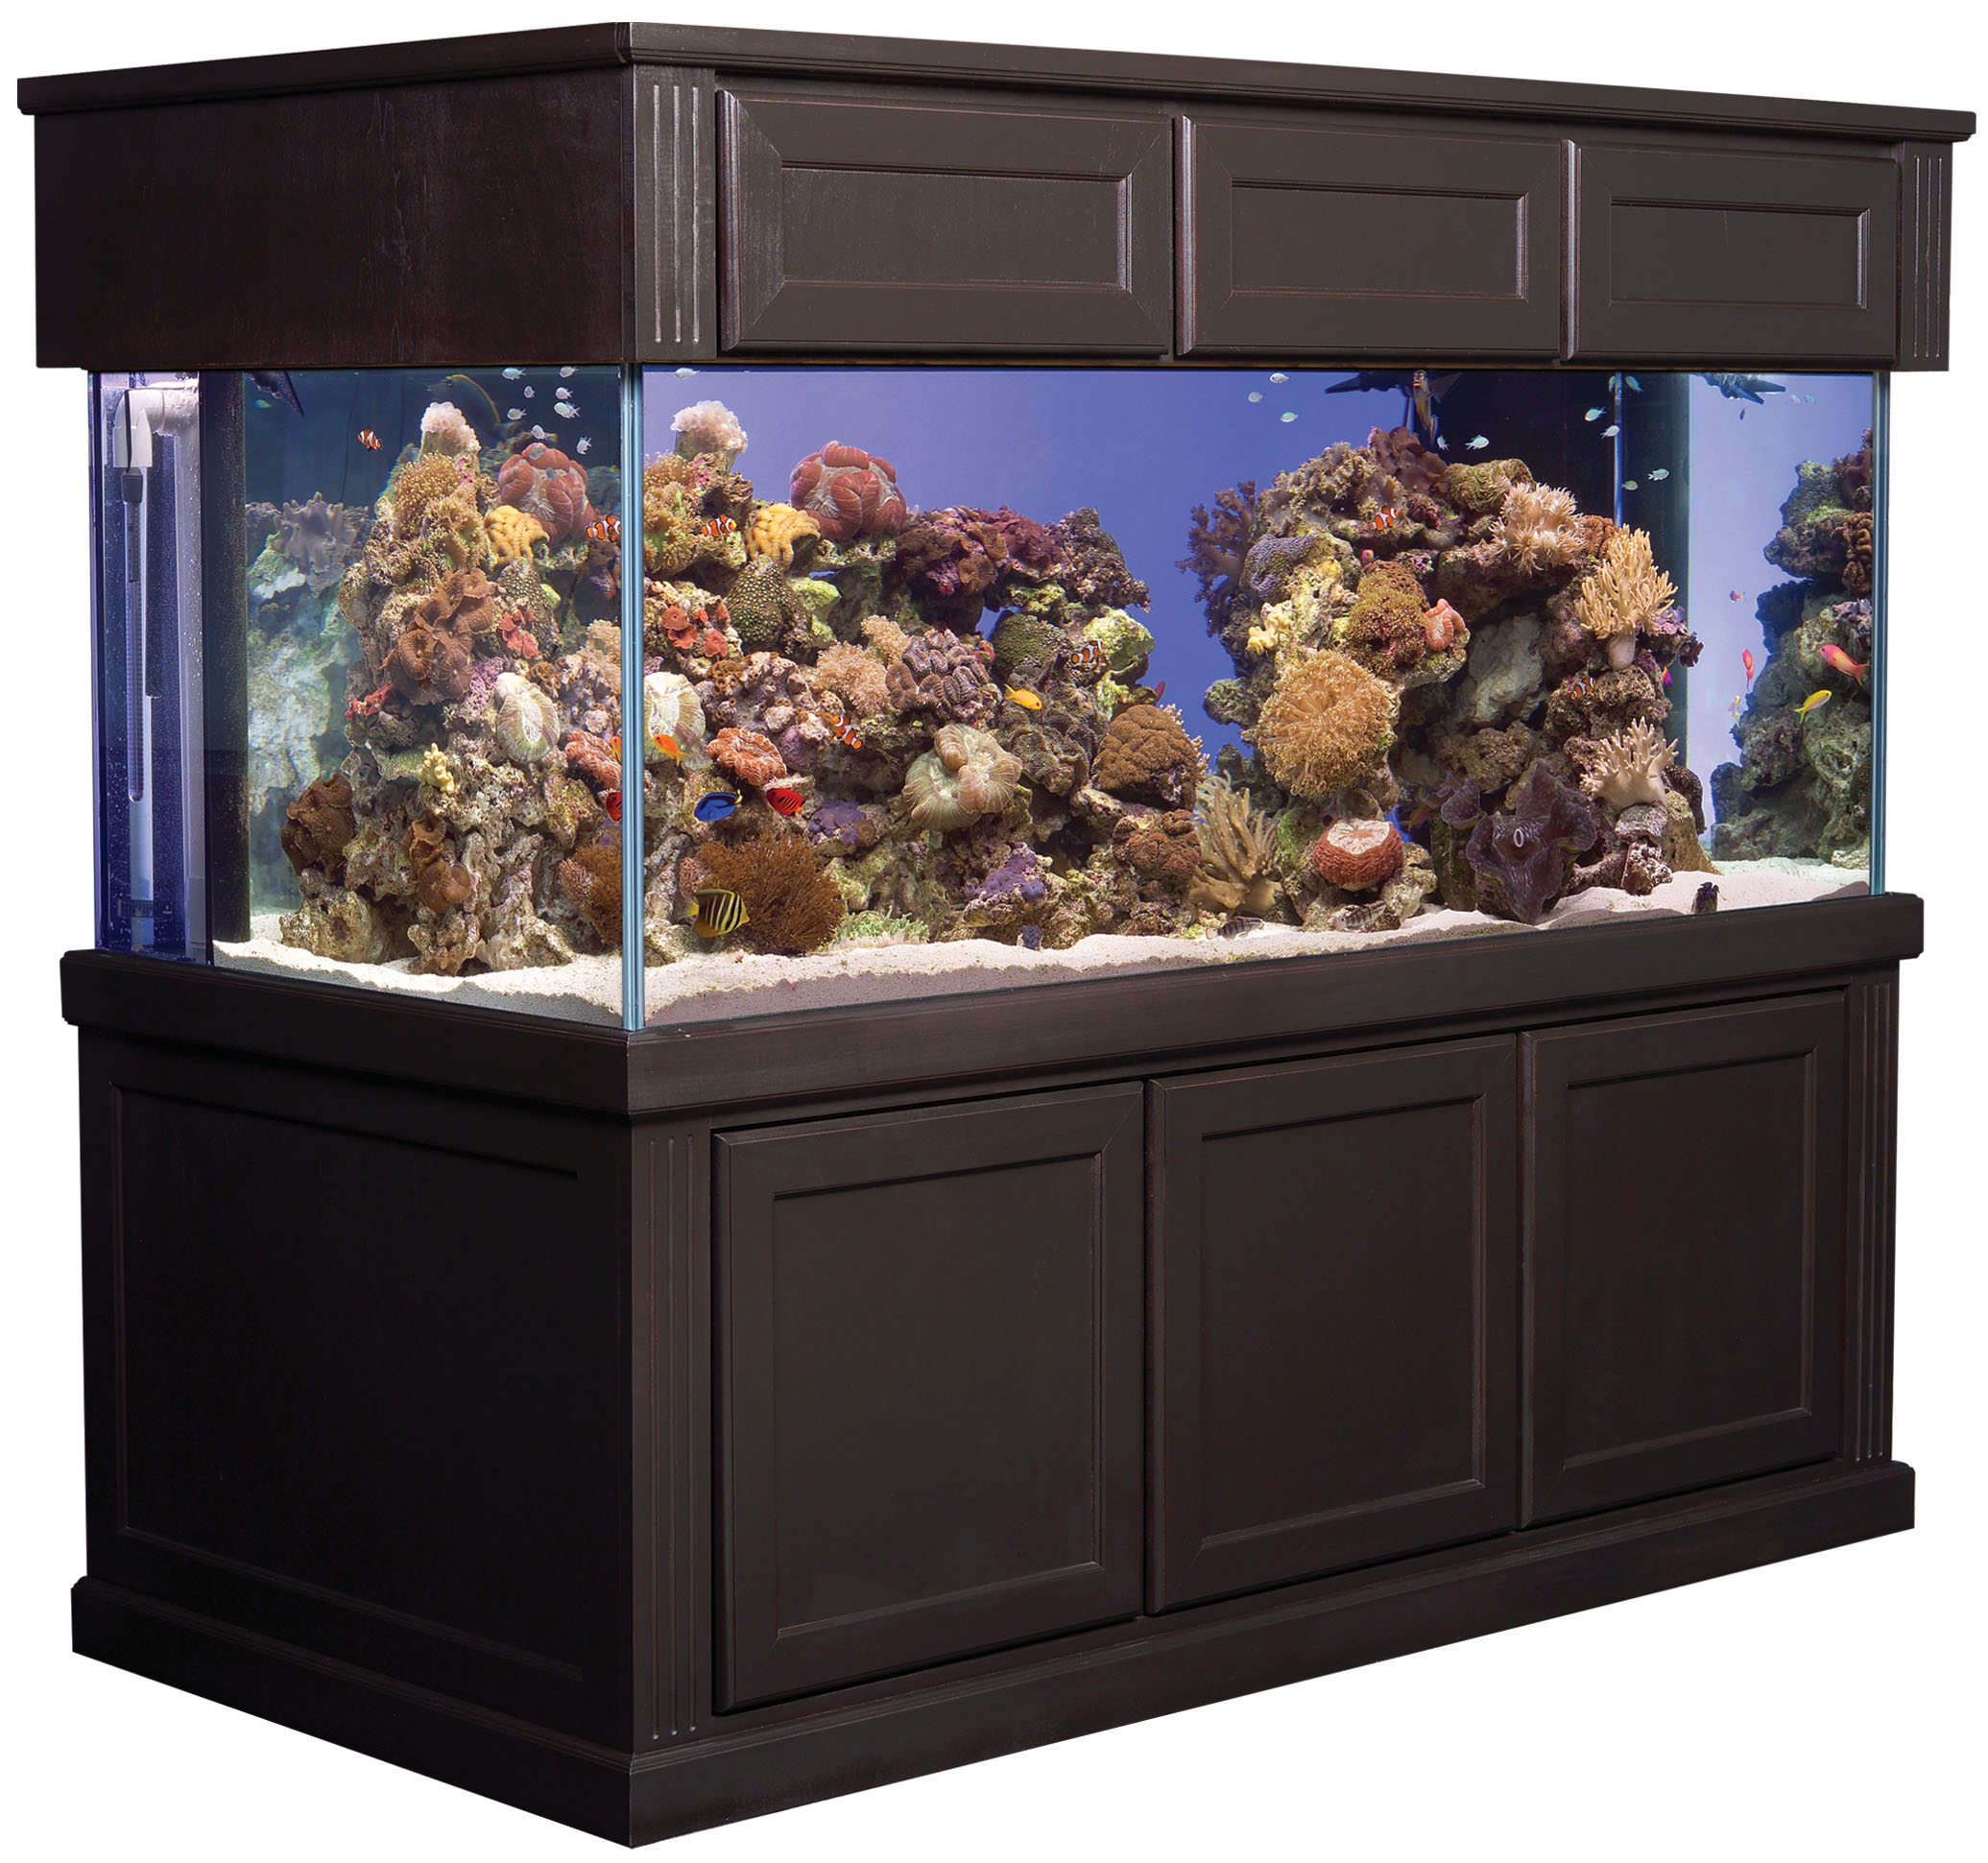 Marineland Shop & Buy Glass Aquariums and Tanks : Questions, Answers ...